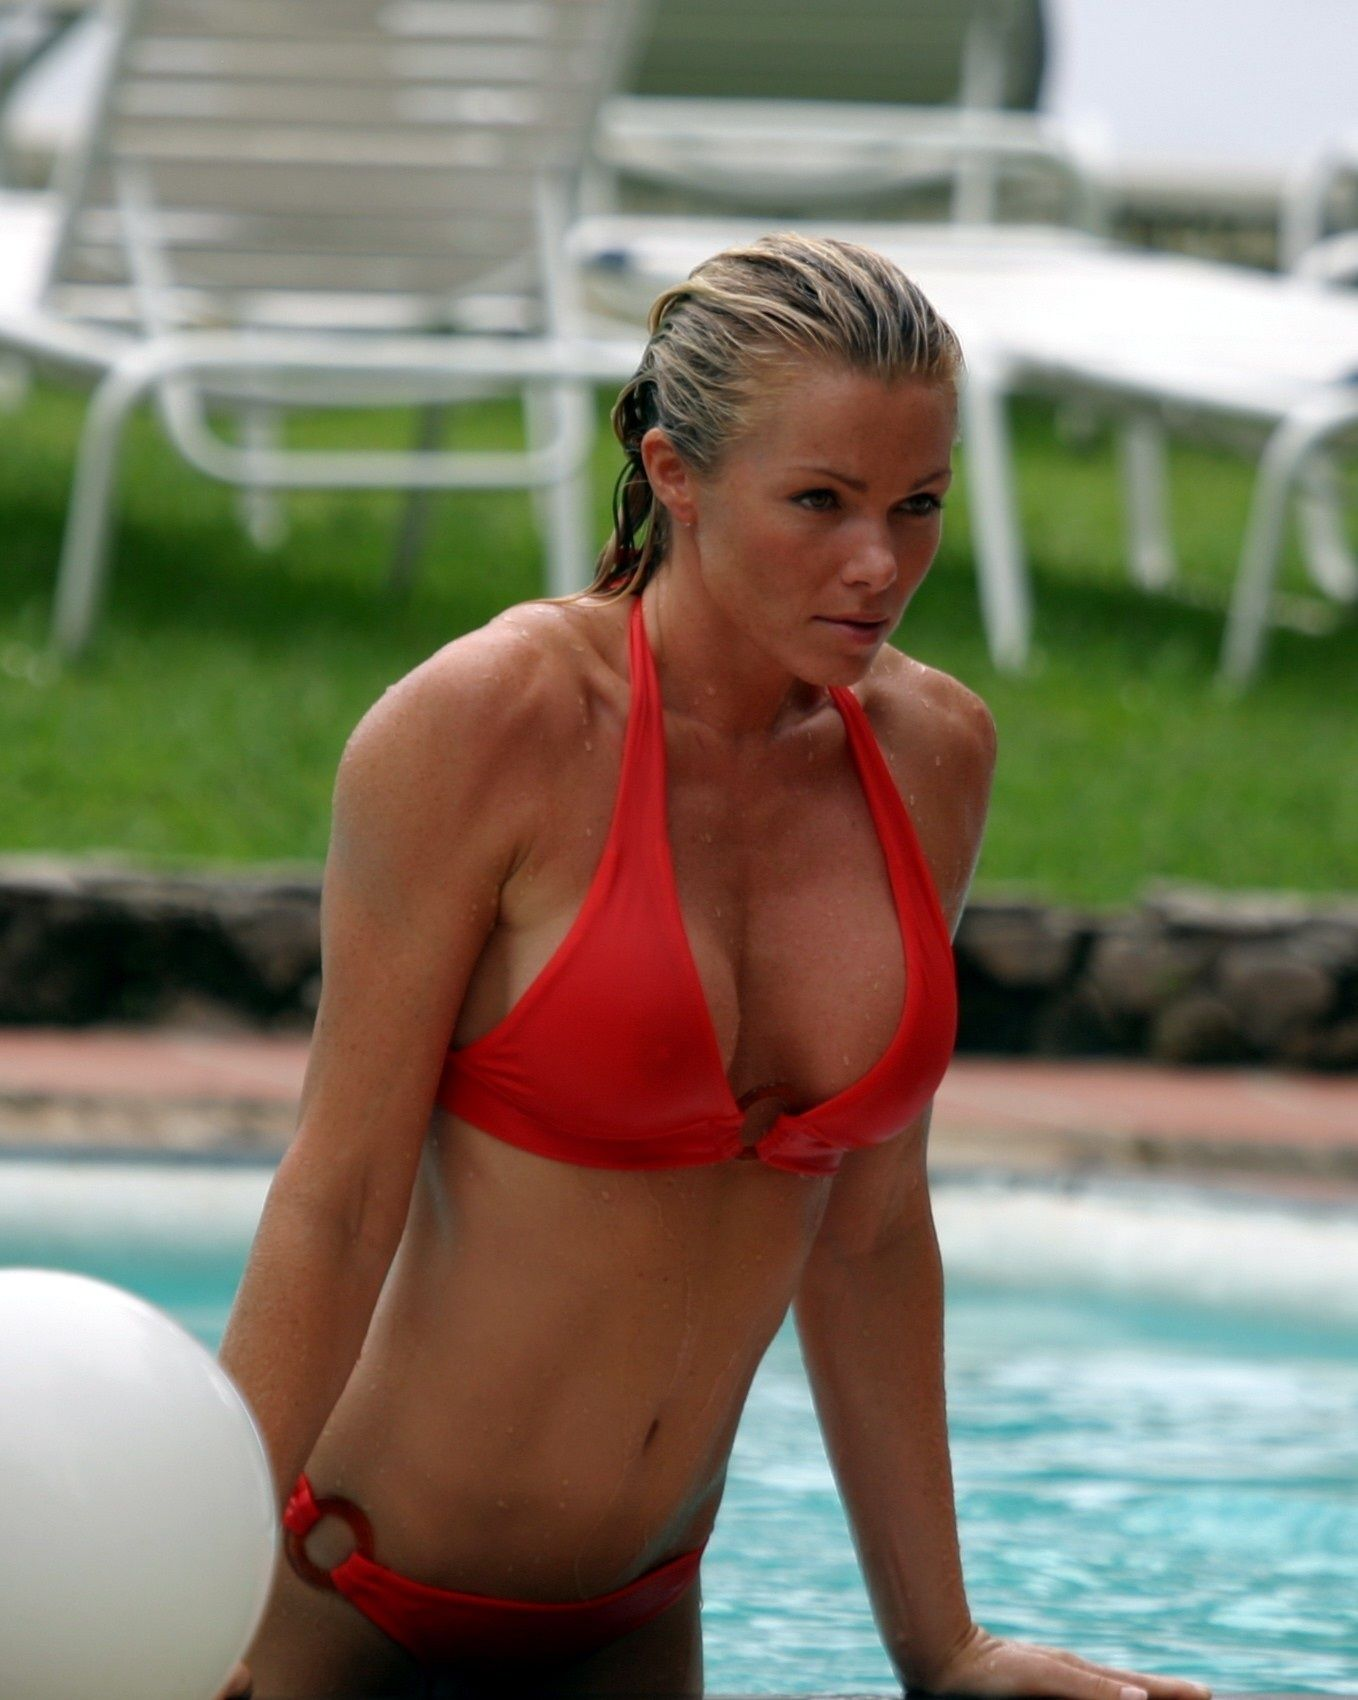 Boobs Nell McAndrew nudes (28 photos), Sexy, Fappening, Twitter, cleavage 2015